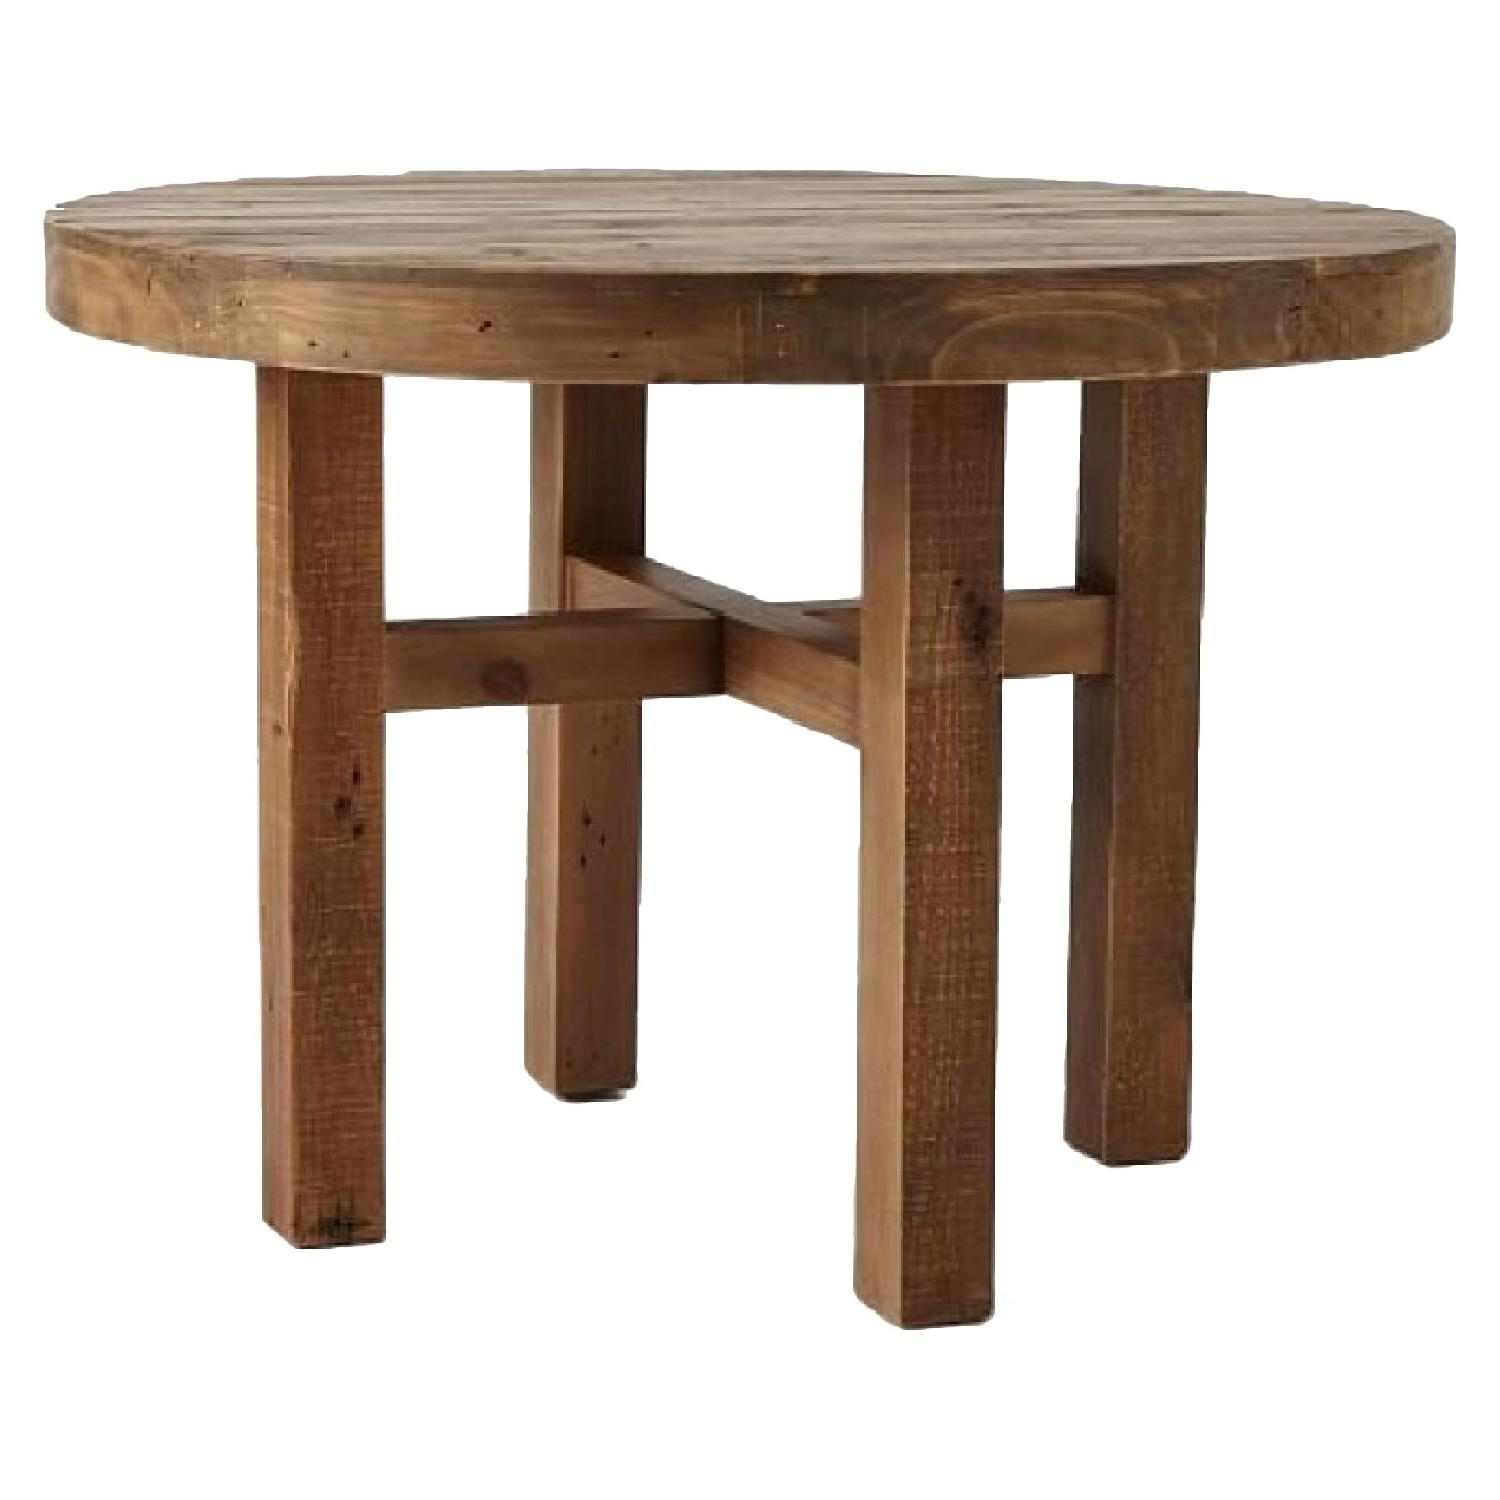 West Elm Emmerson Reclaimed Wood Round Dining Table AptDeco - West elm emmerson reclaimed wood coffee table